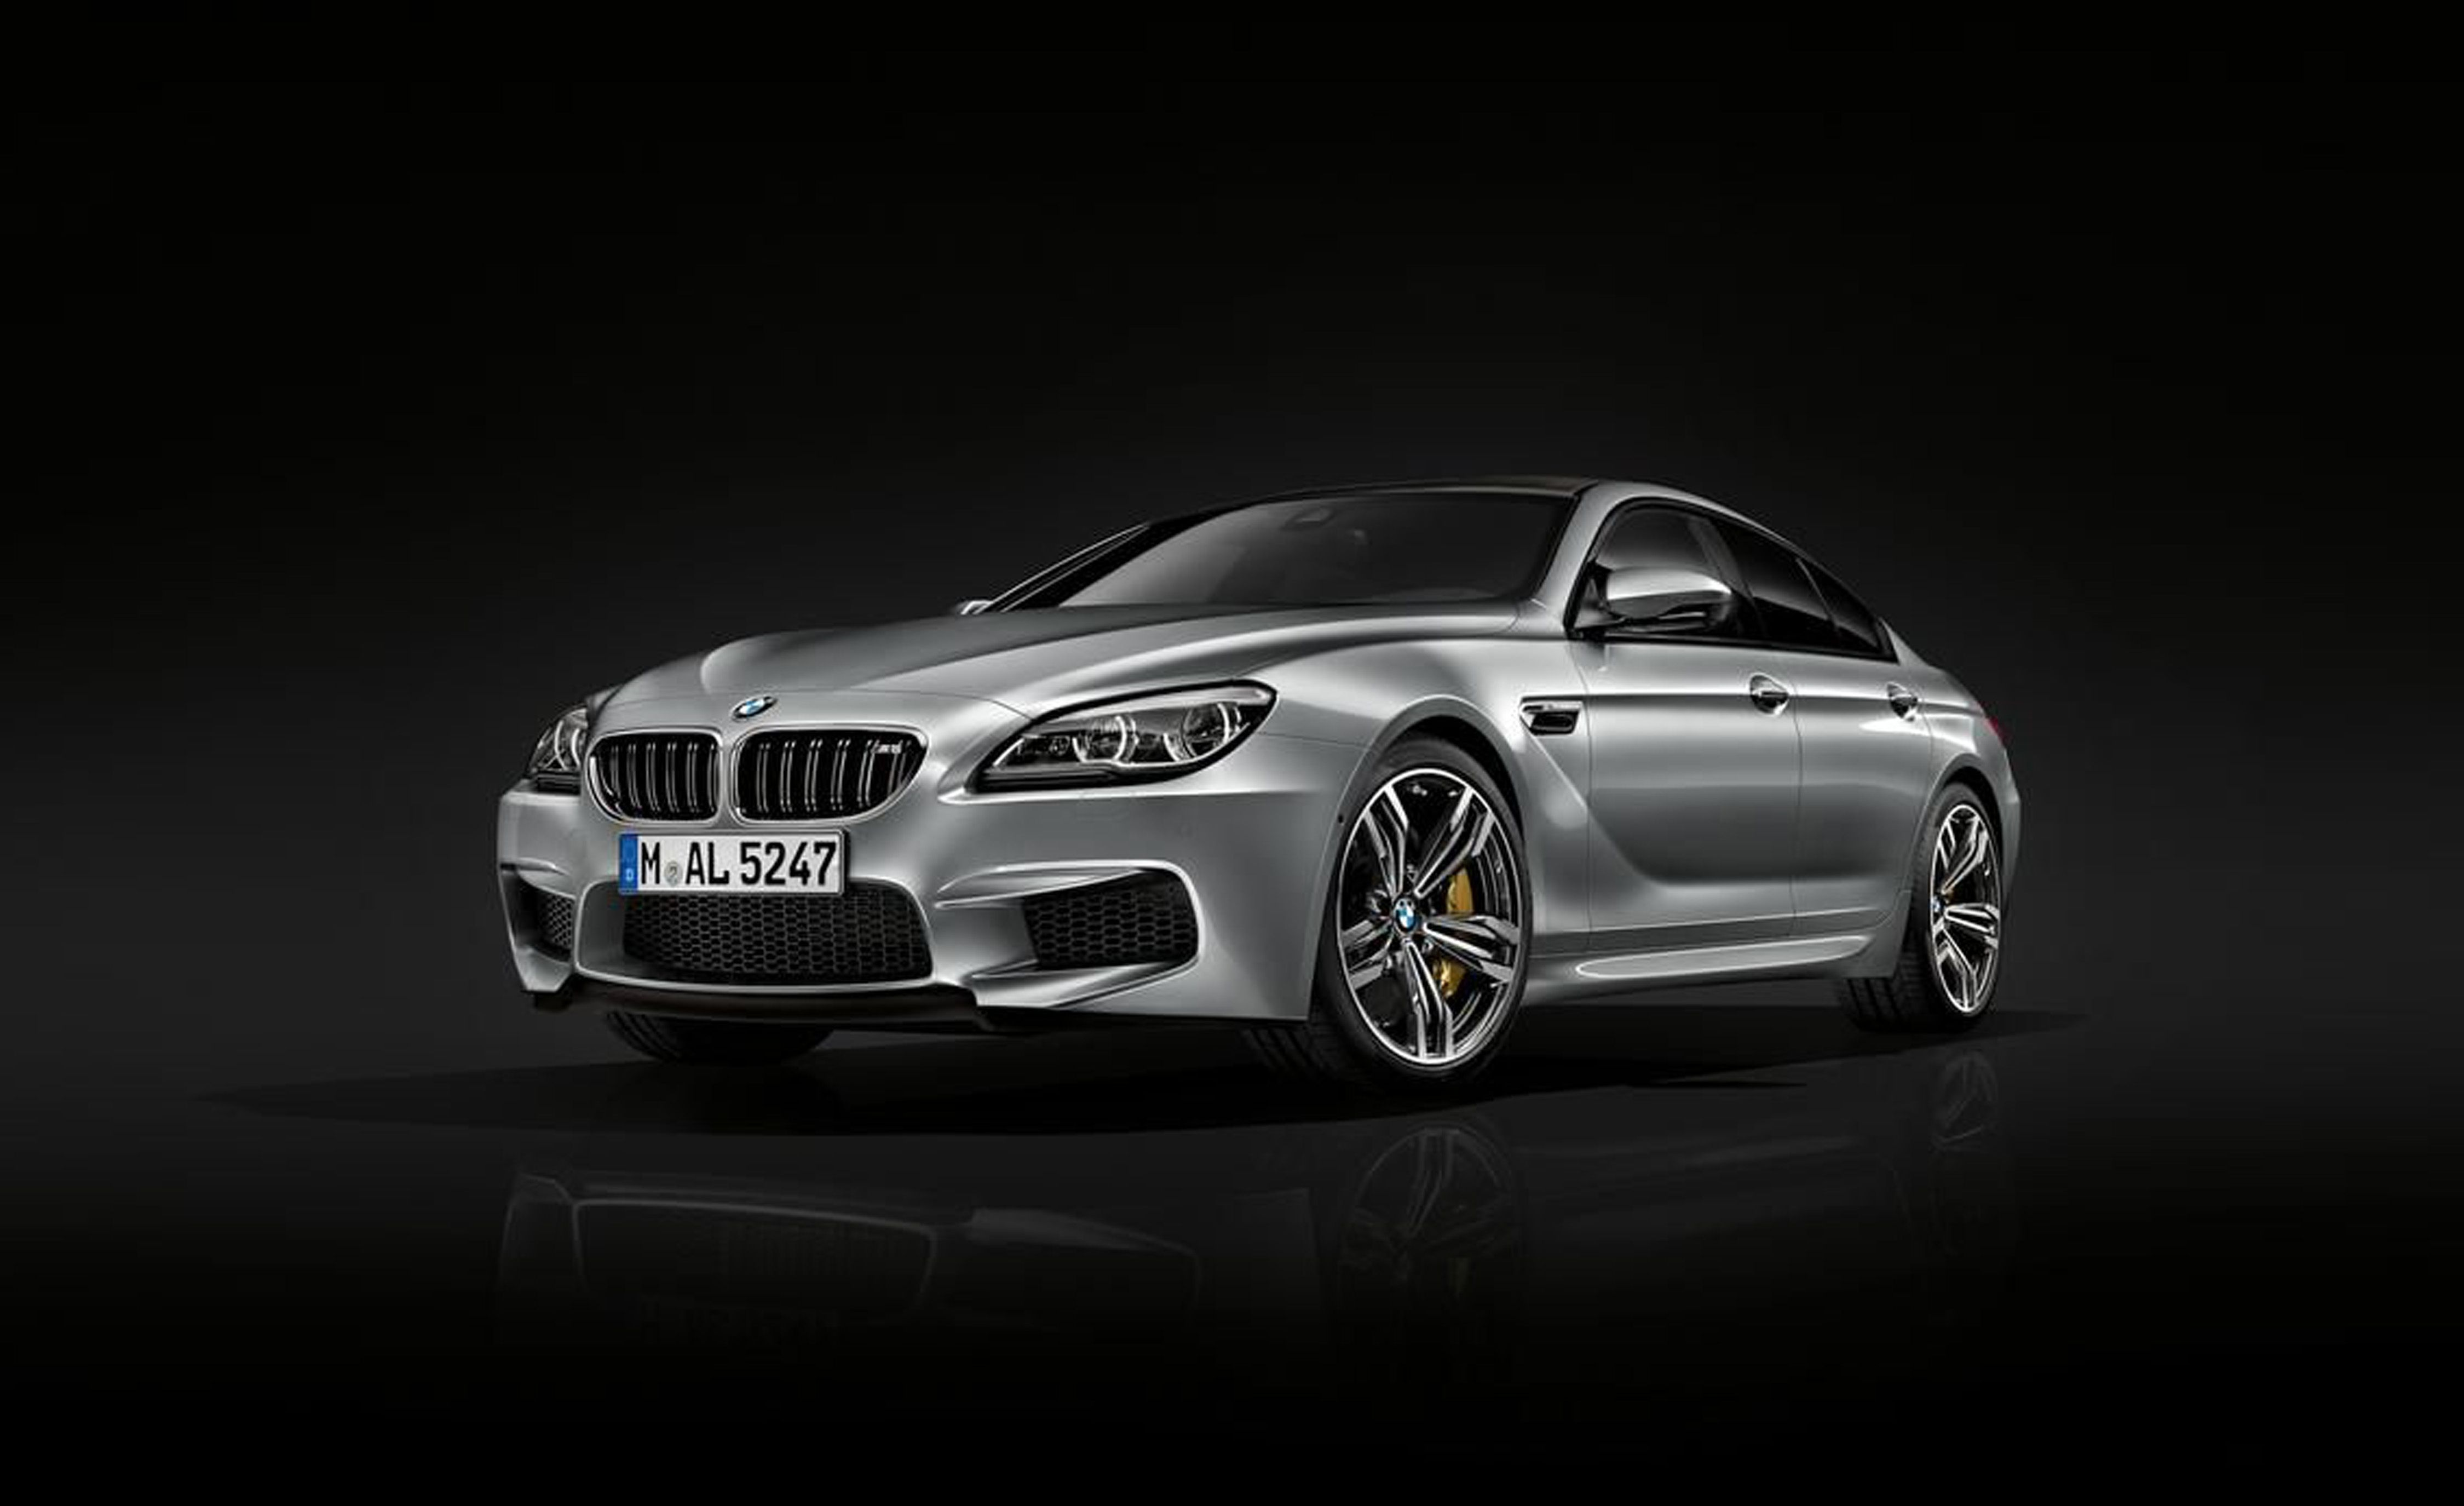 2019 bmw m6 gran coupe reviews bmw m6 gran coupe price. Black Bedroom Furniture Sets. Home Design Ideas